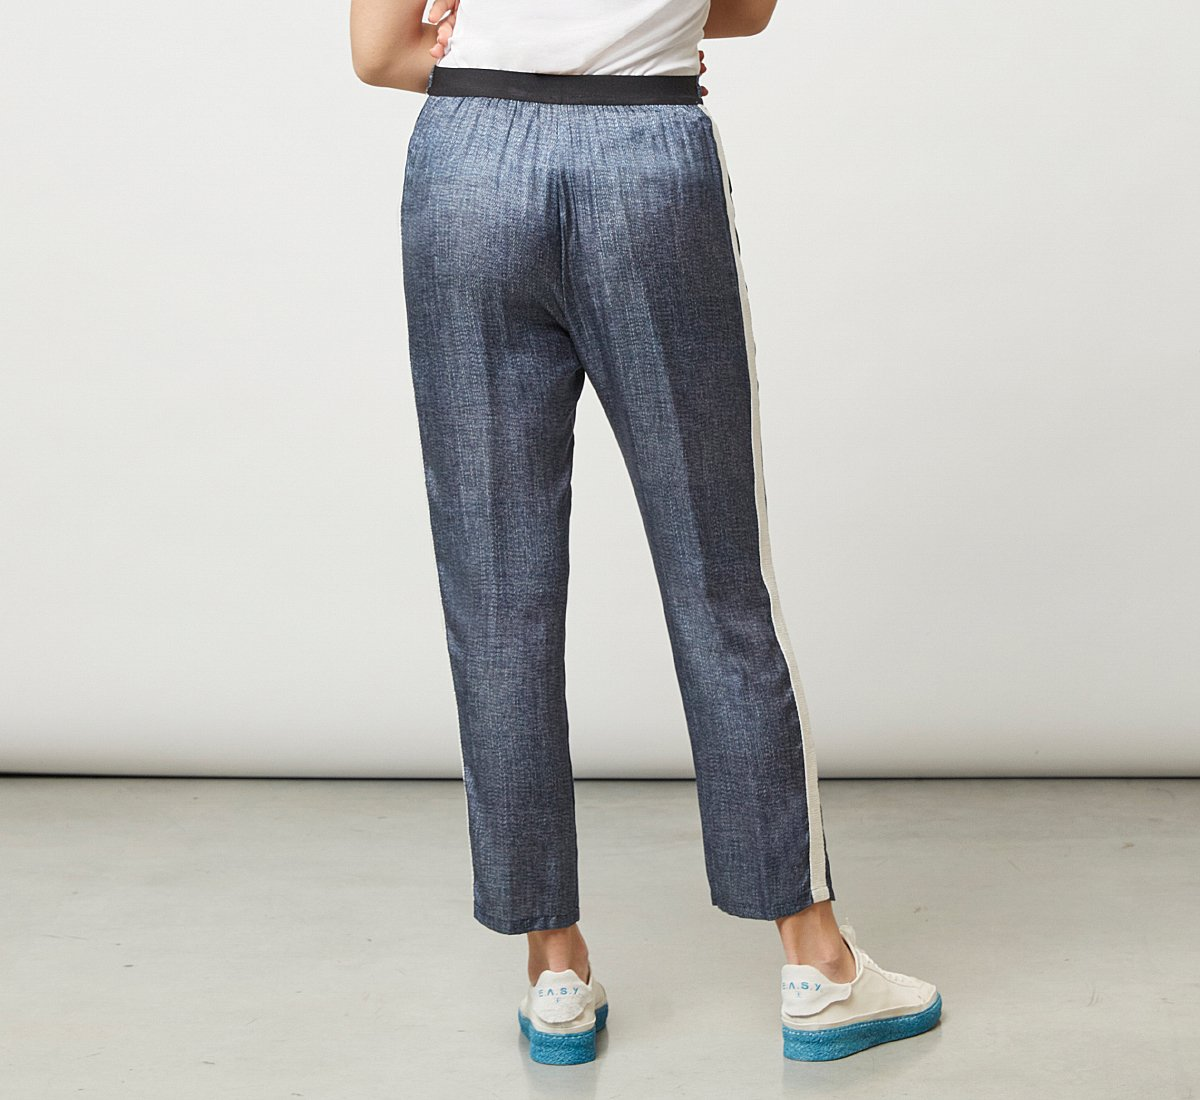 Stretchy, glossy-effect trousers